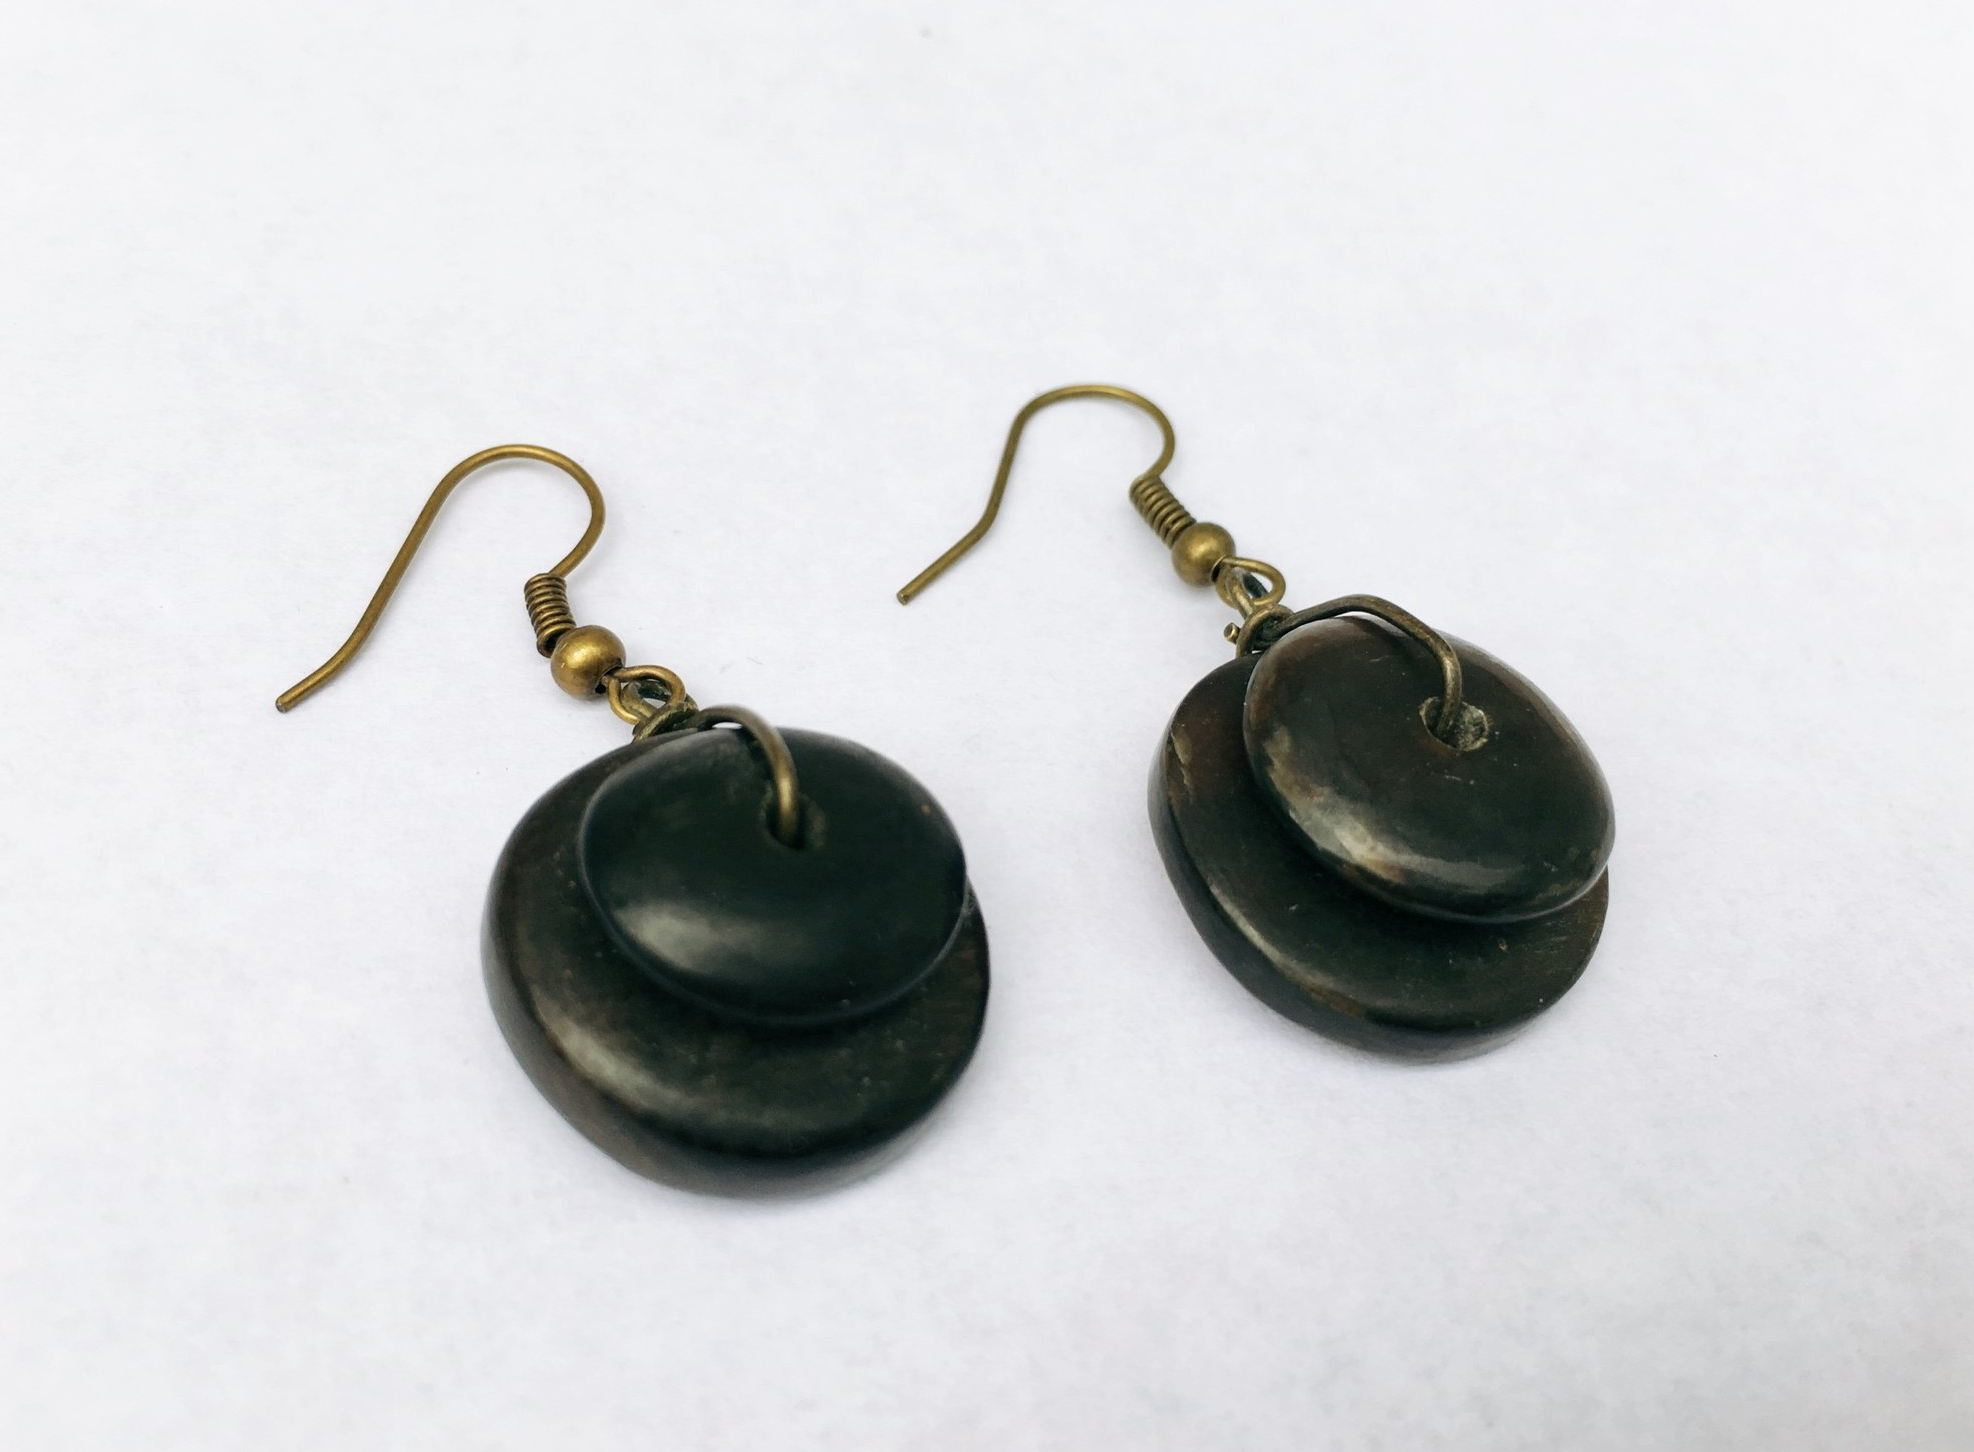 CARABALLA NO. 1 EARRINGS - HAndmade using beads derived from the horn of a carabao (Philippine water buffalo).